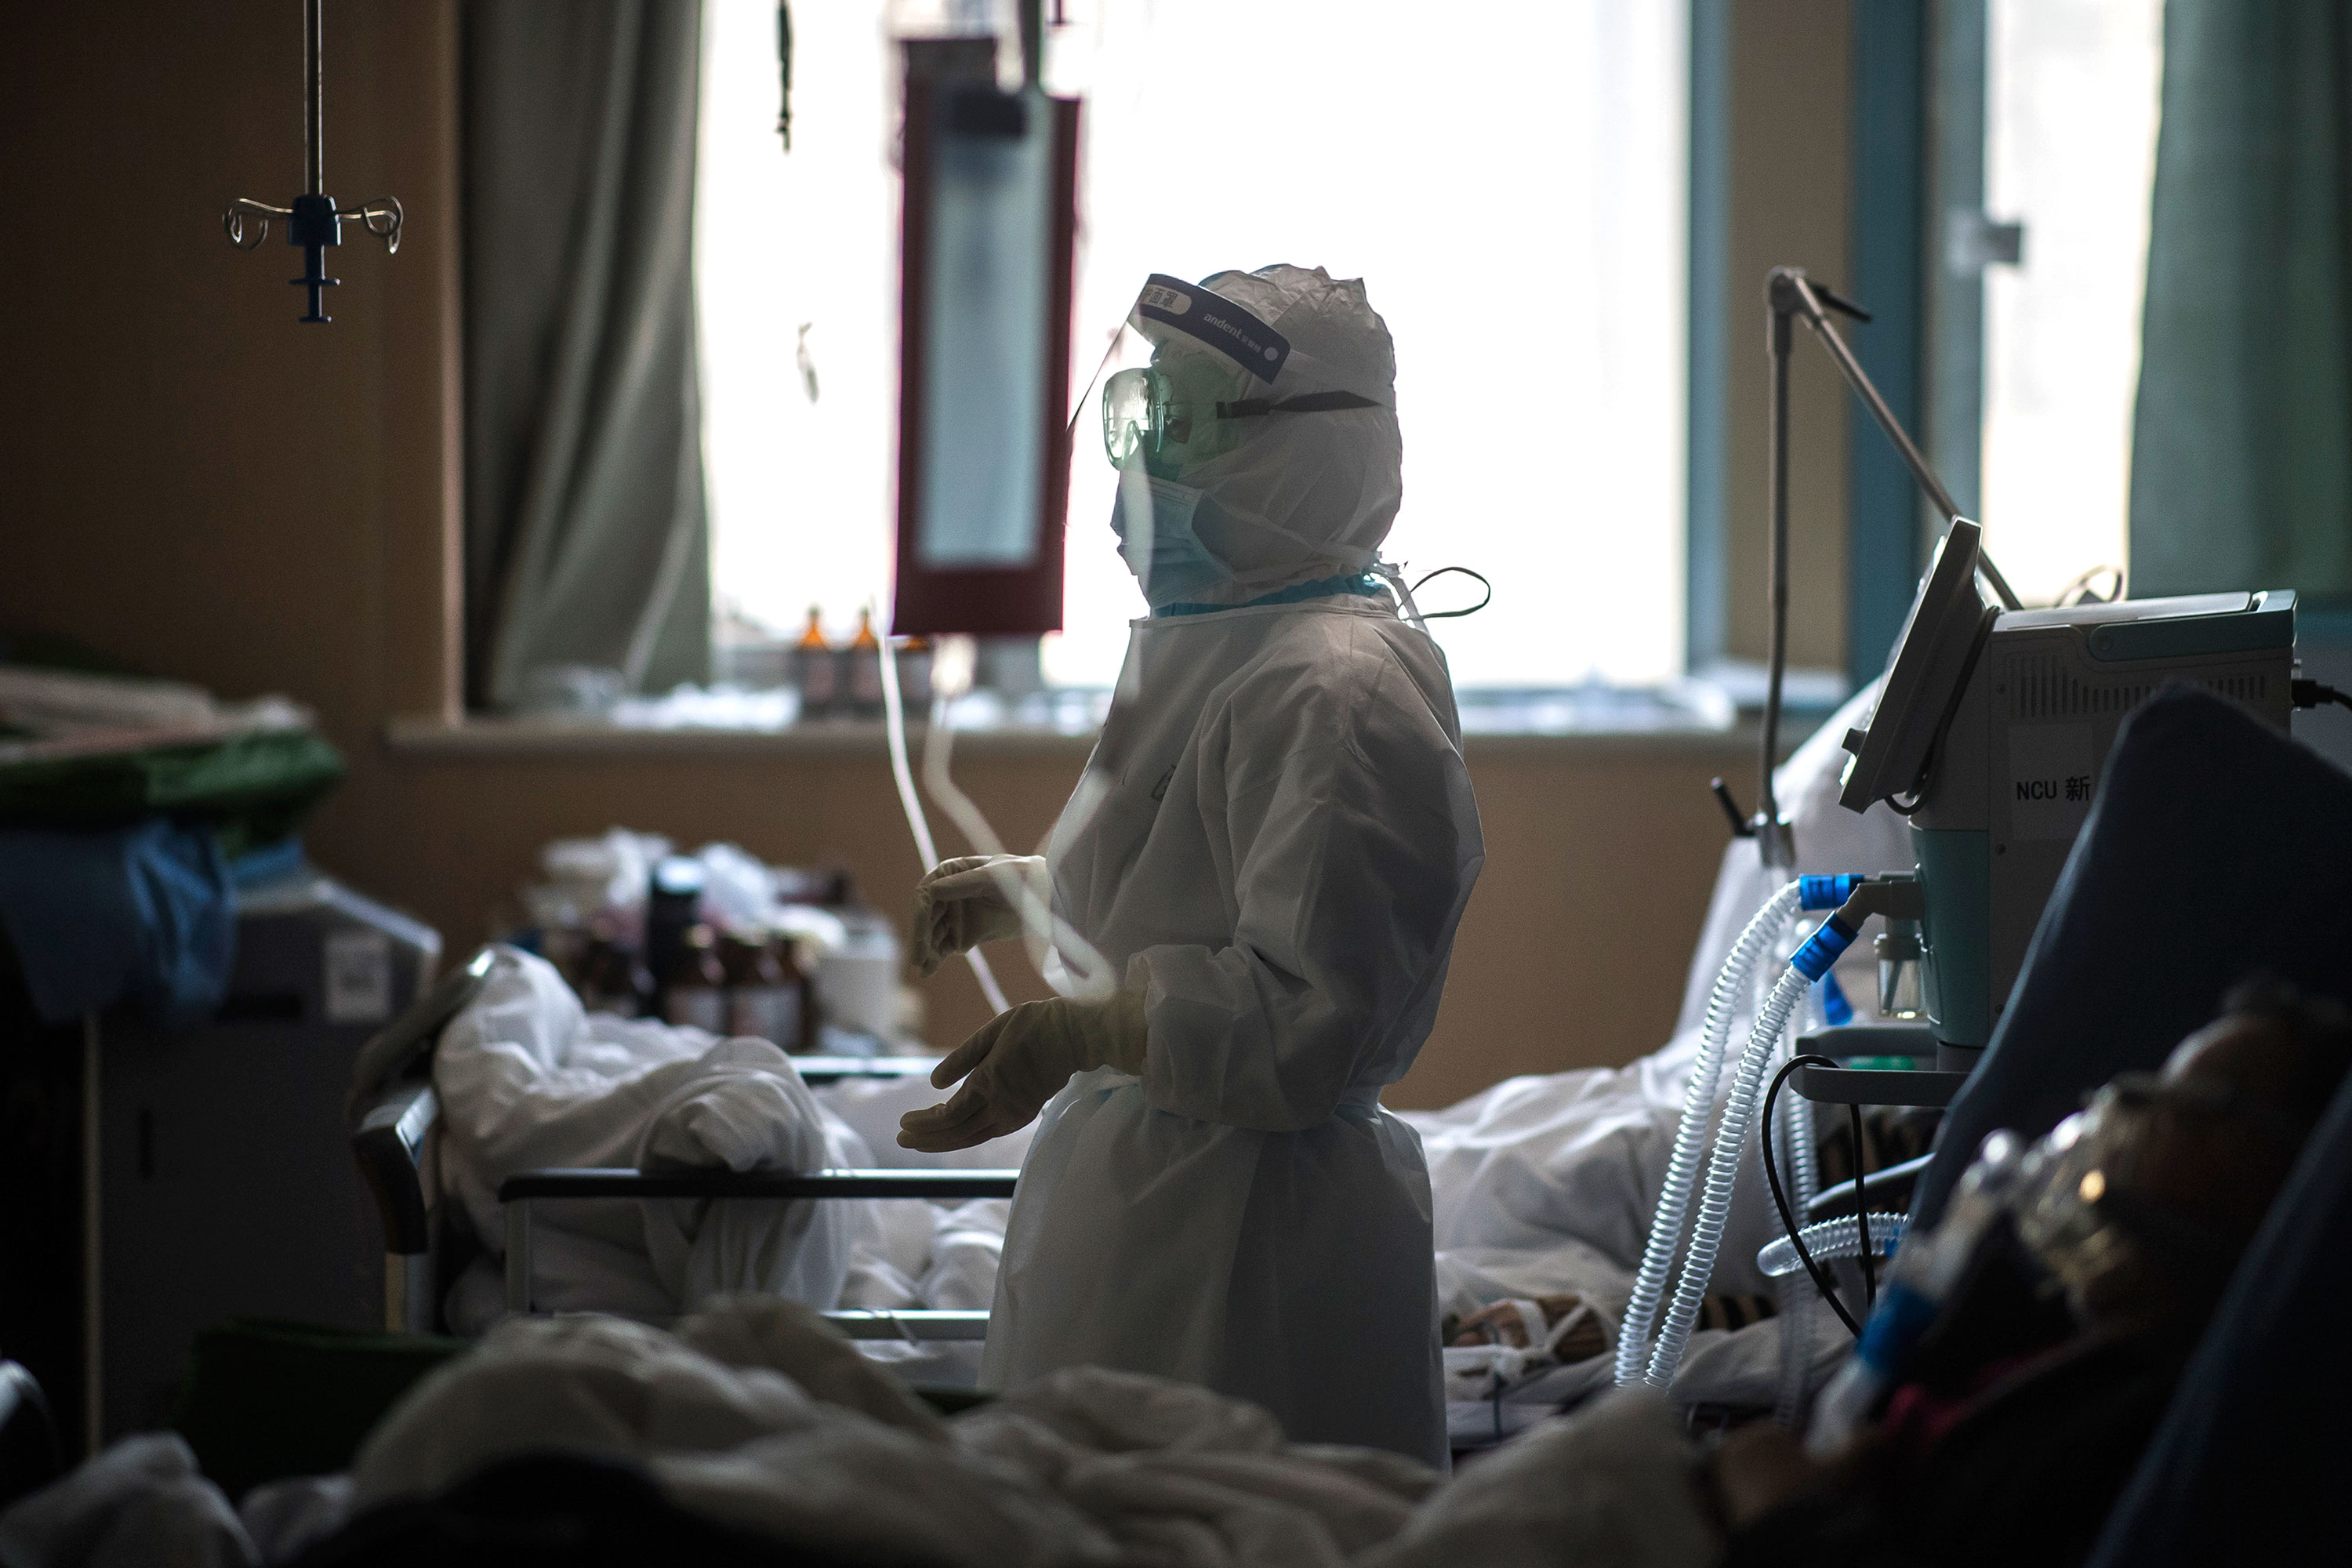 A nurse works in an ICU ward for patients infected by coronavirus in Wuhan, on February 22.